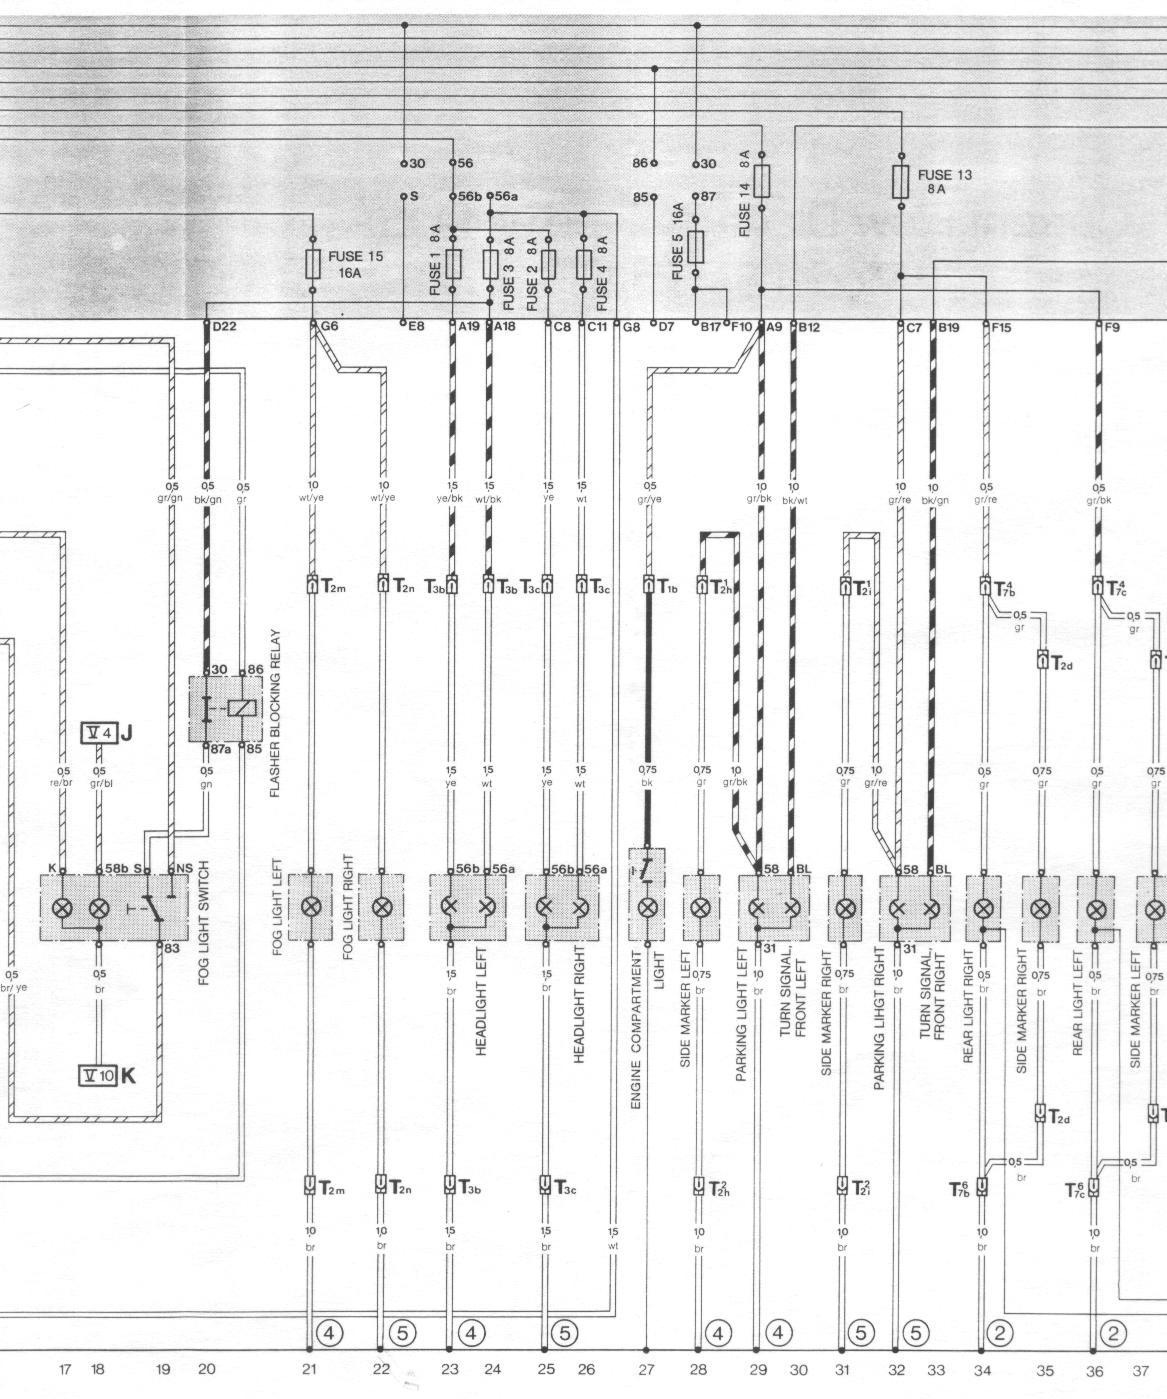 1987 ford pickup wiring diagram 1987 automotive wiring diagrams description 944 84 2 2 ford pickup wiring diagram